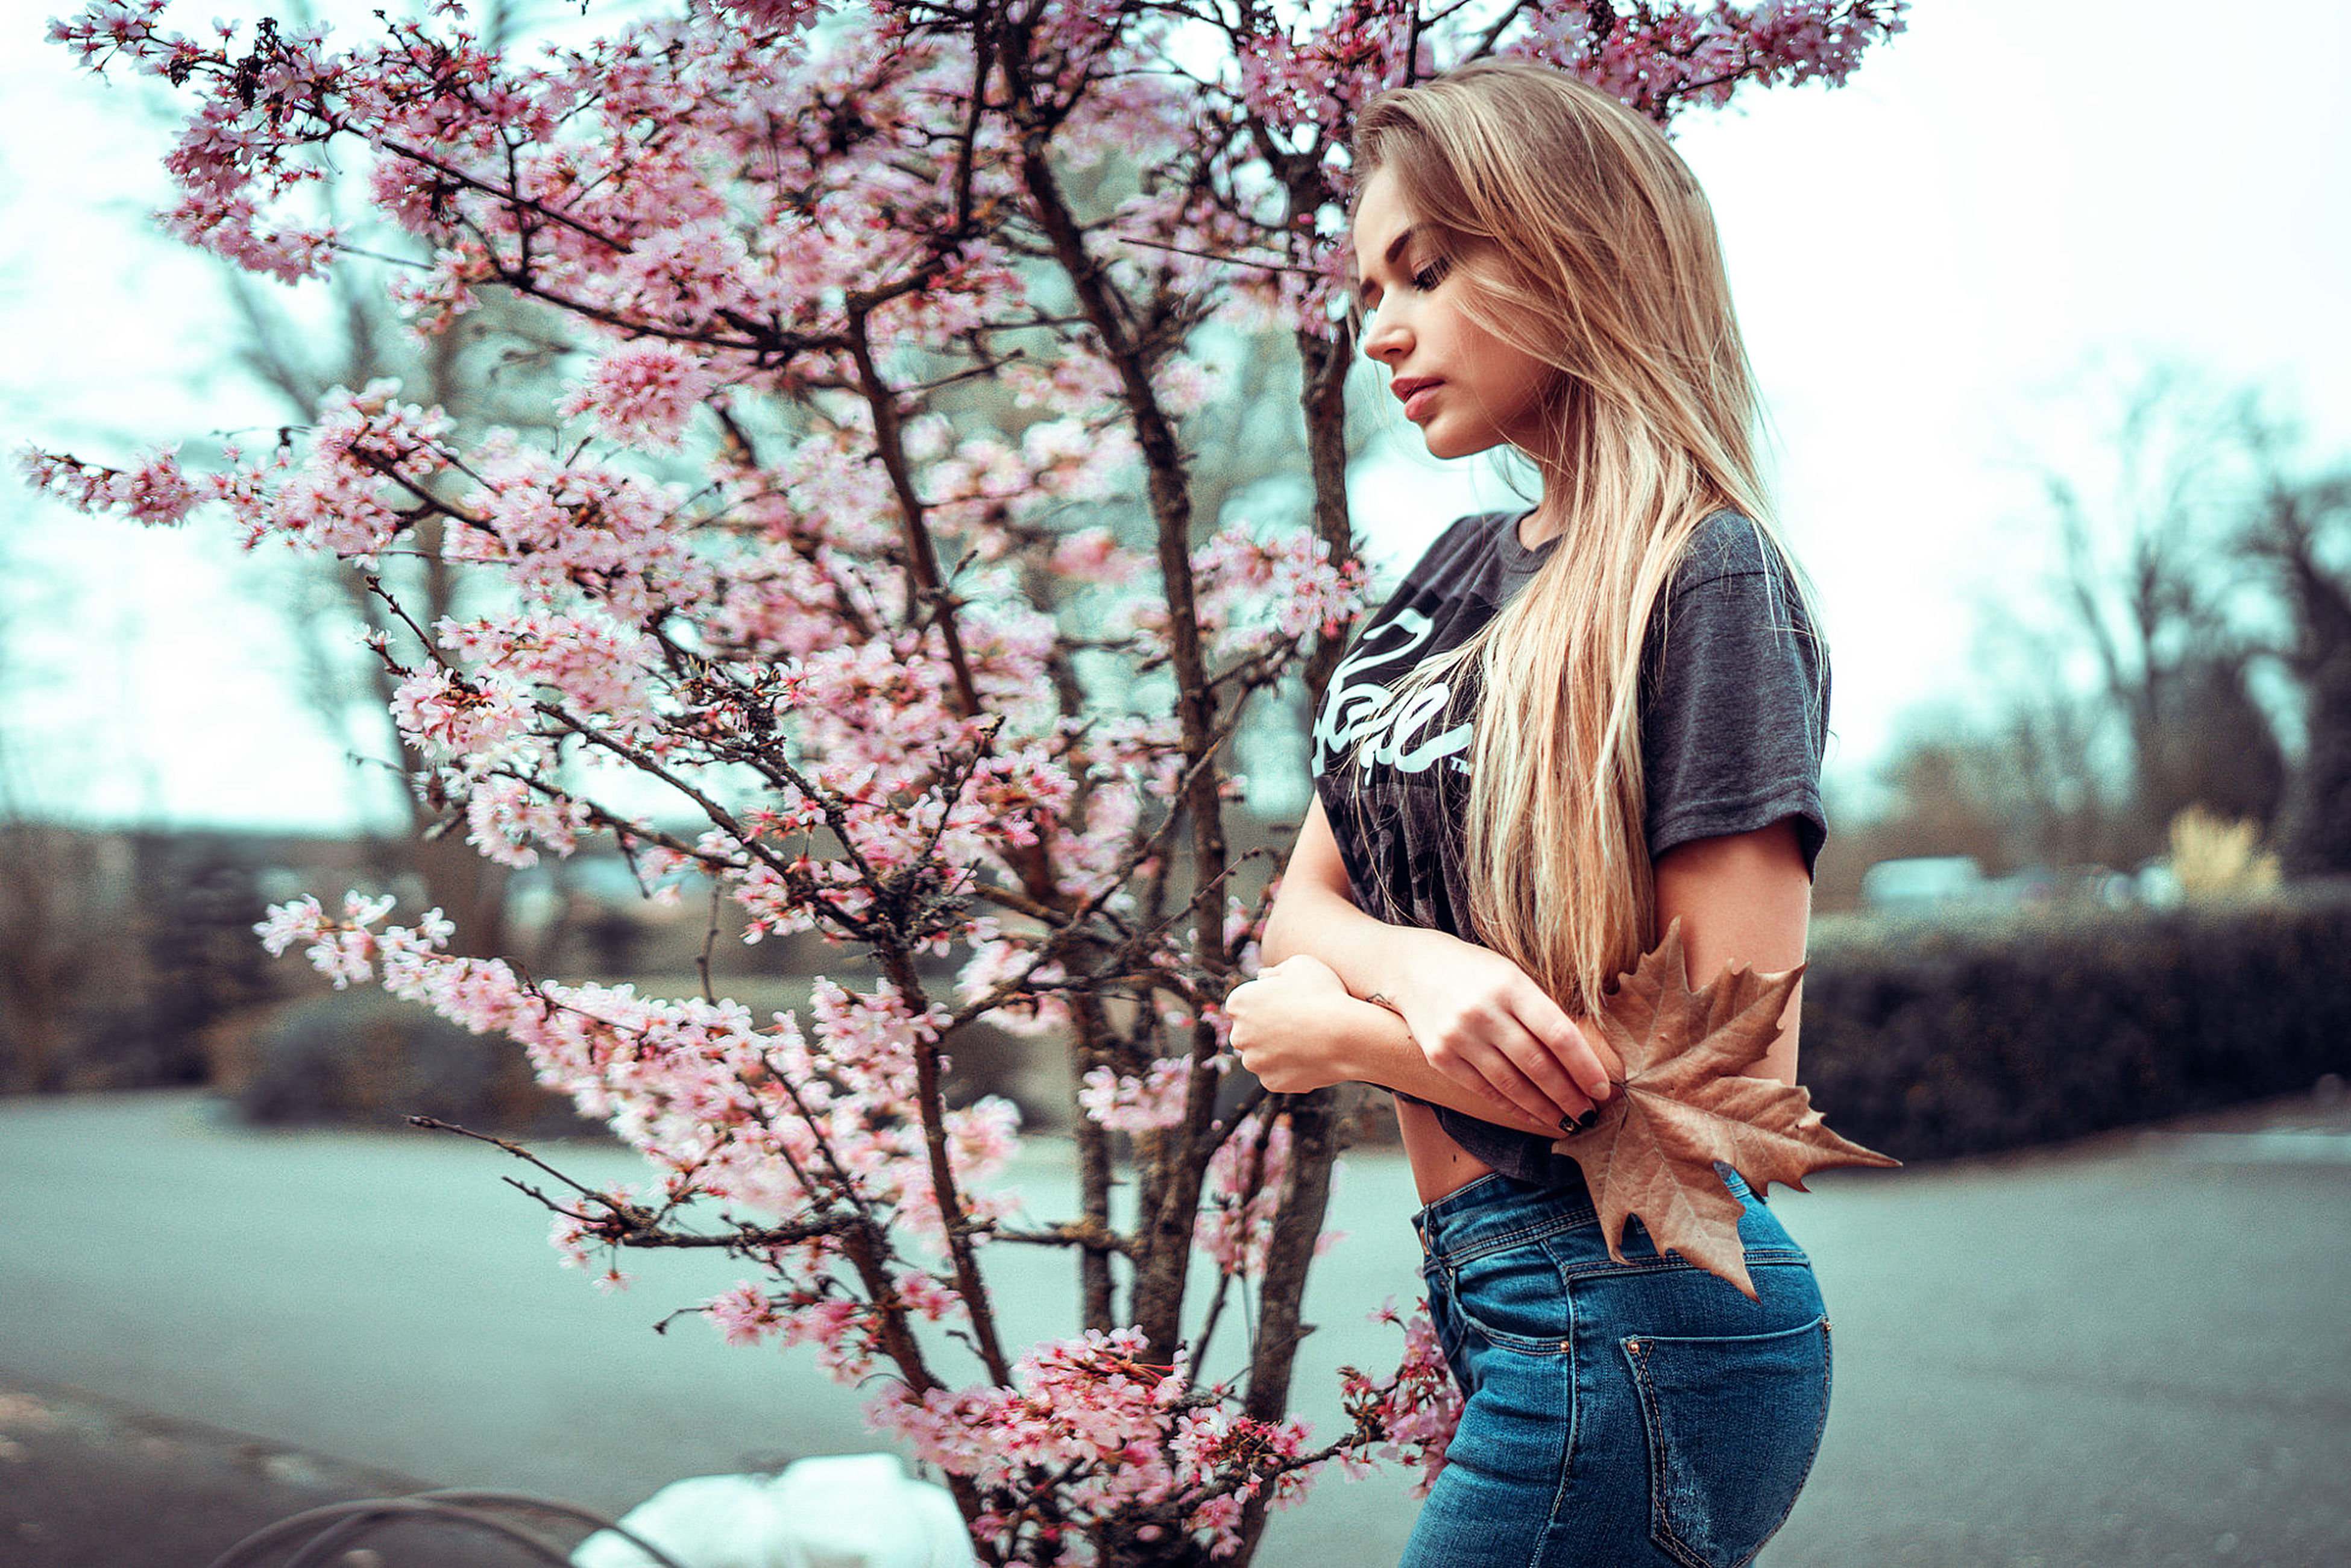 flower, tree, one person, nature, blossom, casual clothing, beauty in nature, young adult, springtime, day, real people, young women, outdoors, standing, beautiful woman, side view, leisure activity, long hair, fragility, focus on foreground, branch, blond hair, growth, one young woman only, women, lifestyles, freshness, sky, people